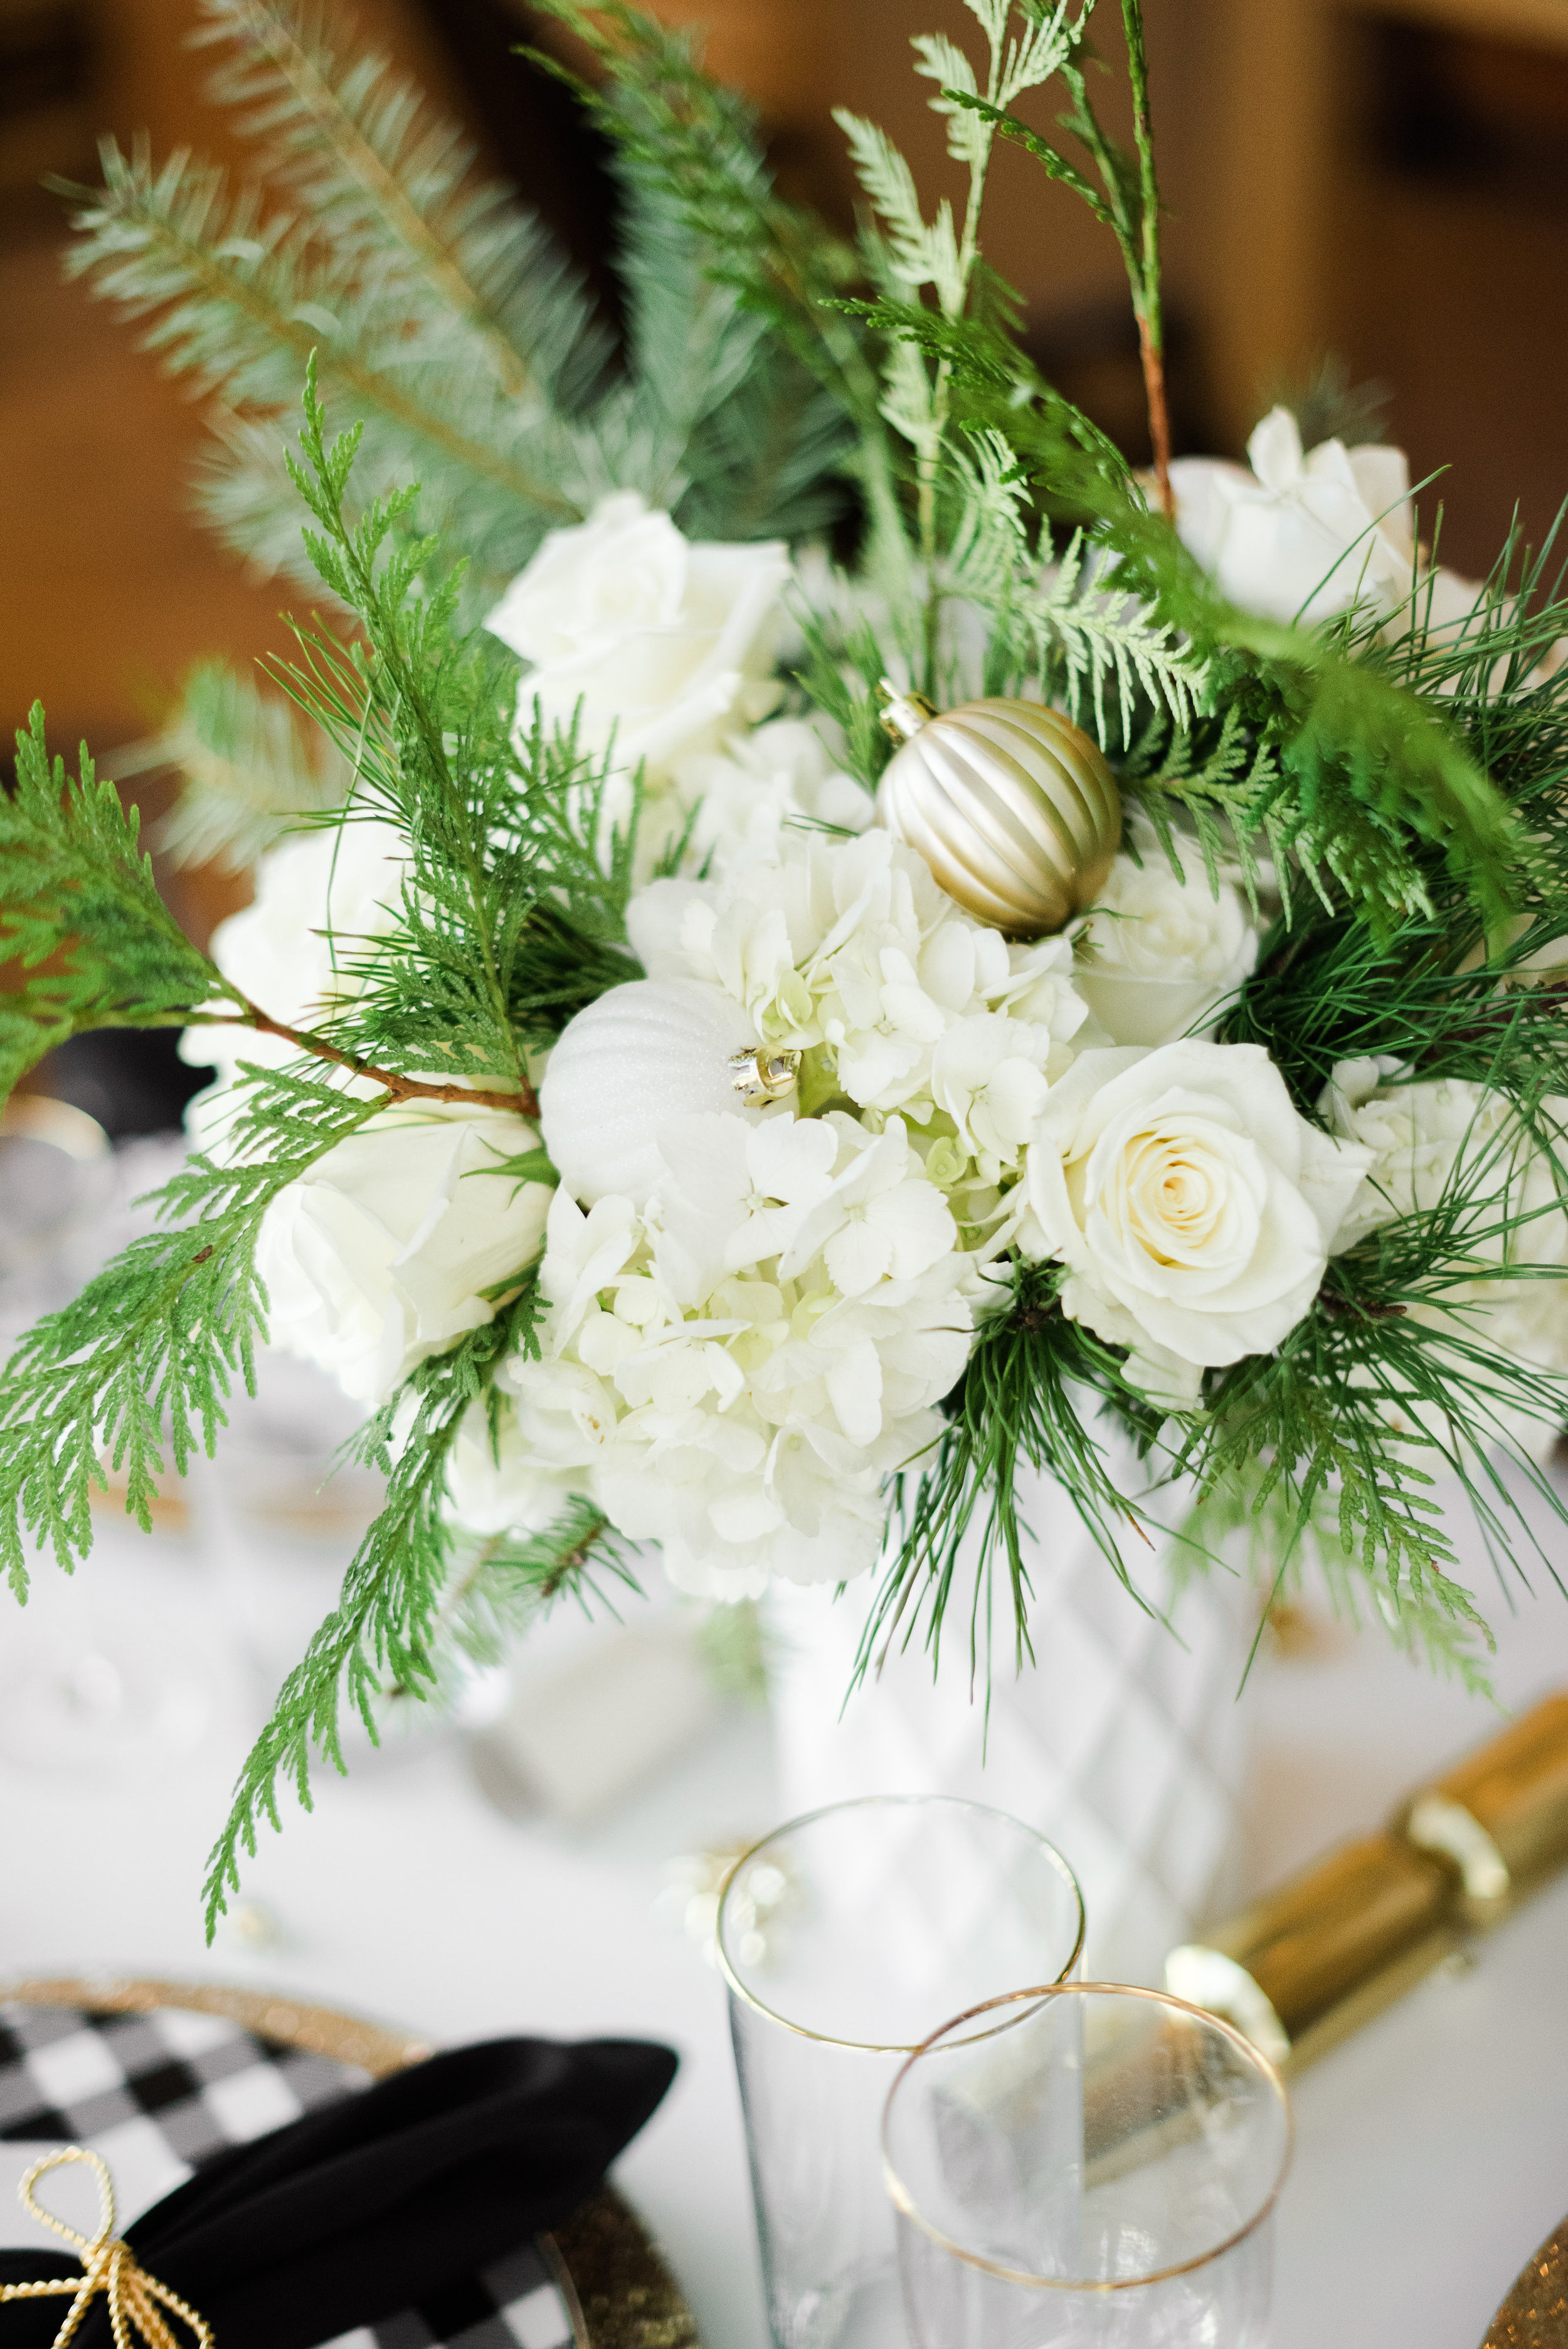 Festive-Black-and-White-Holiday-Party-Ideas-For-Christmas